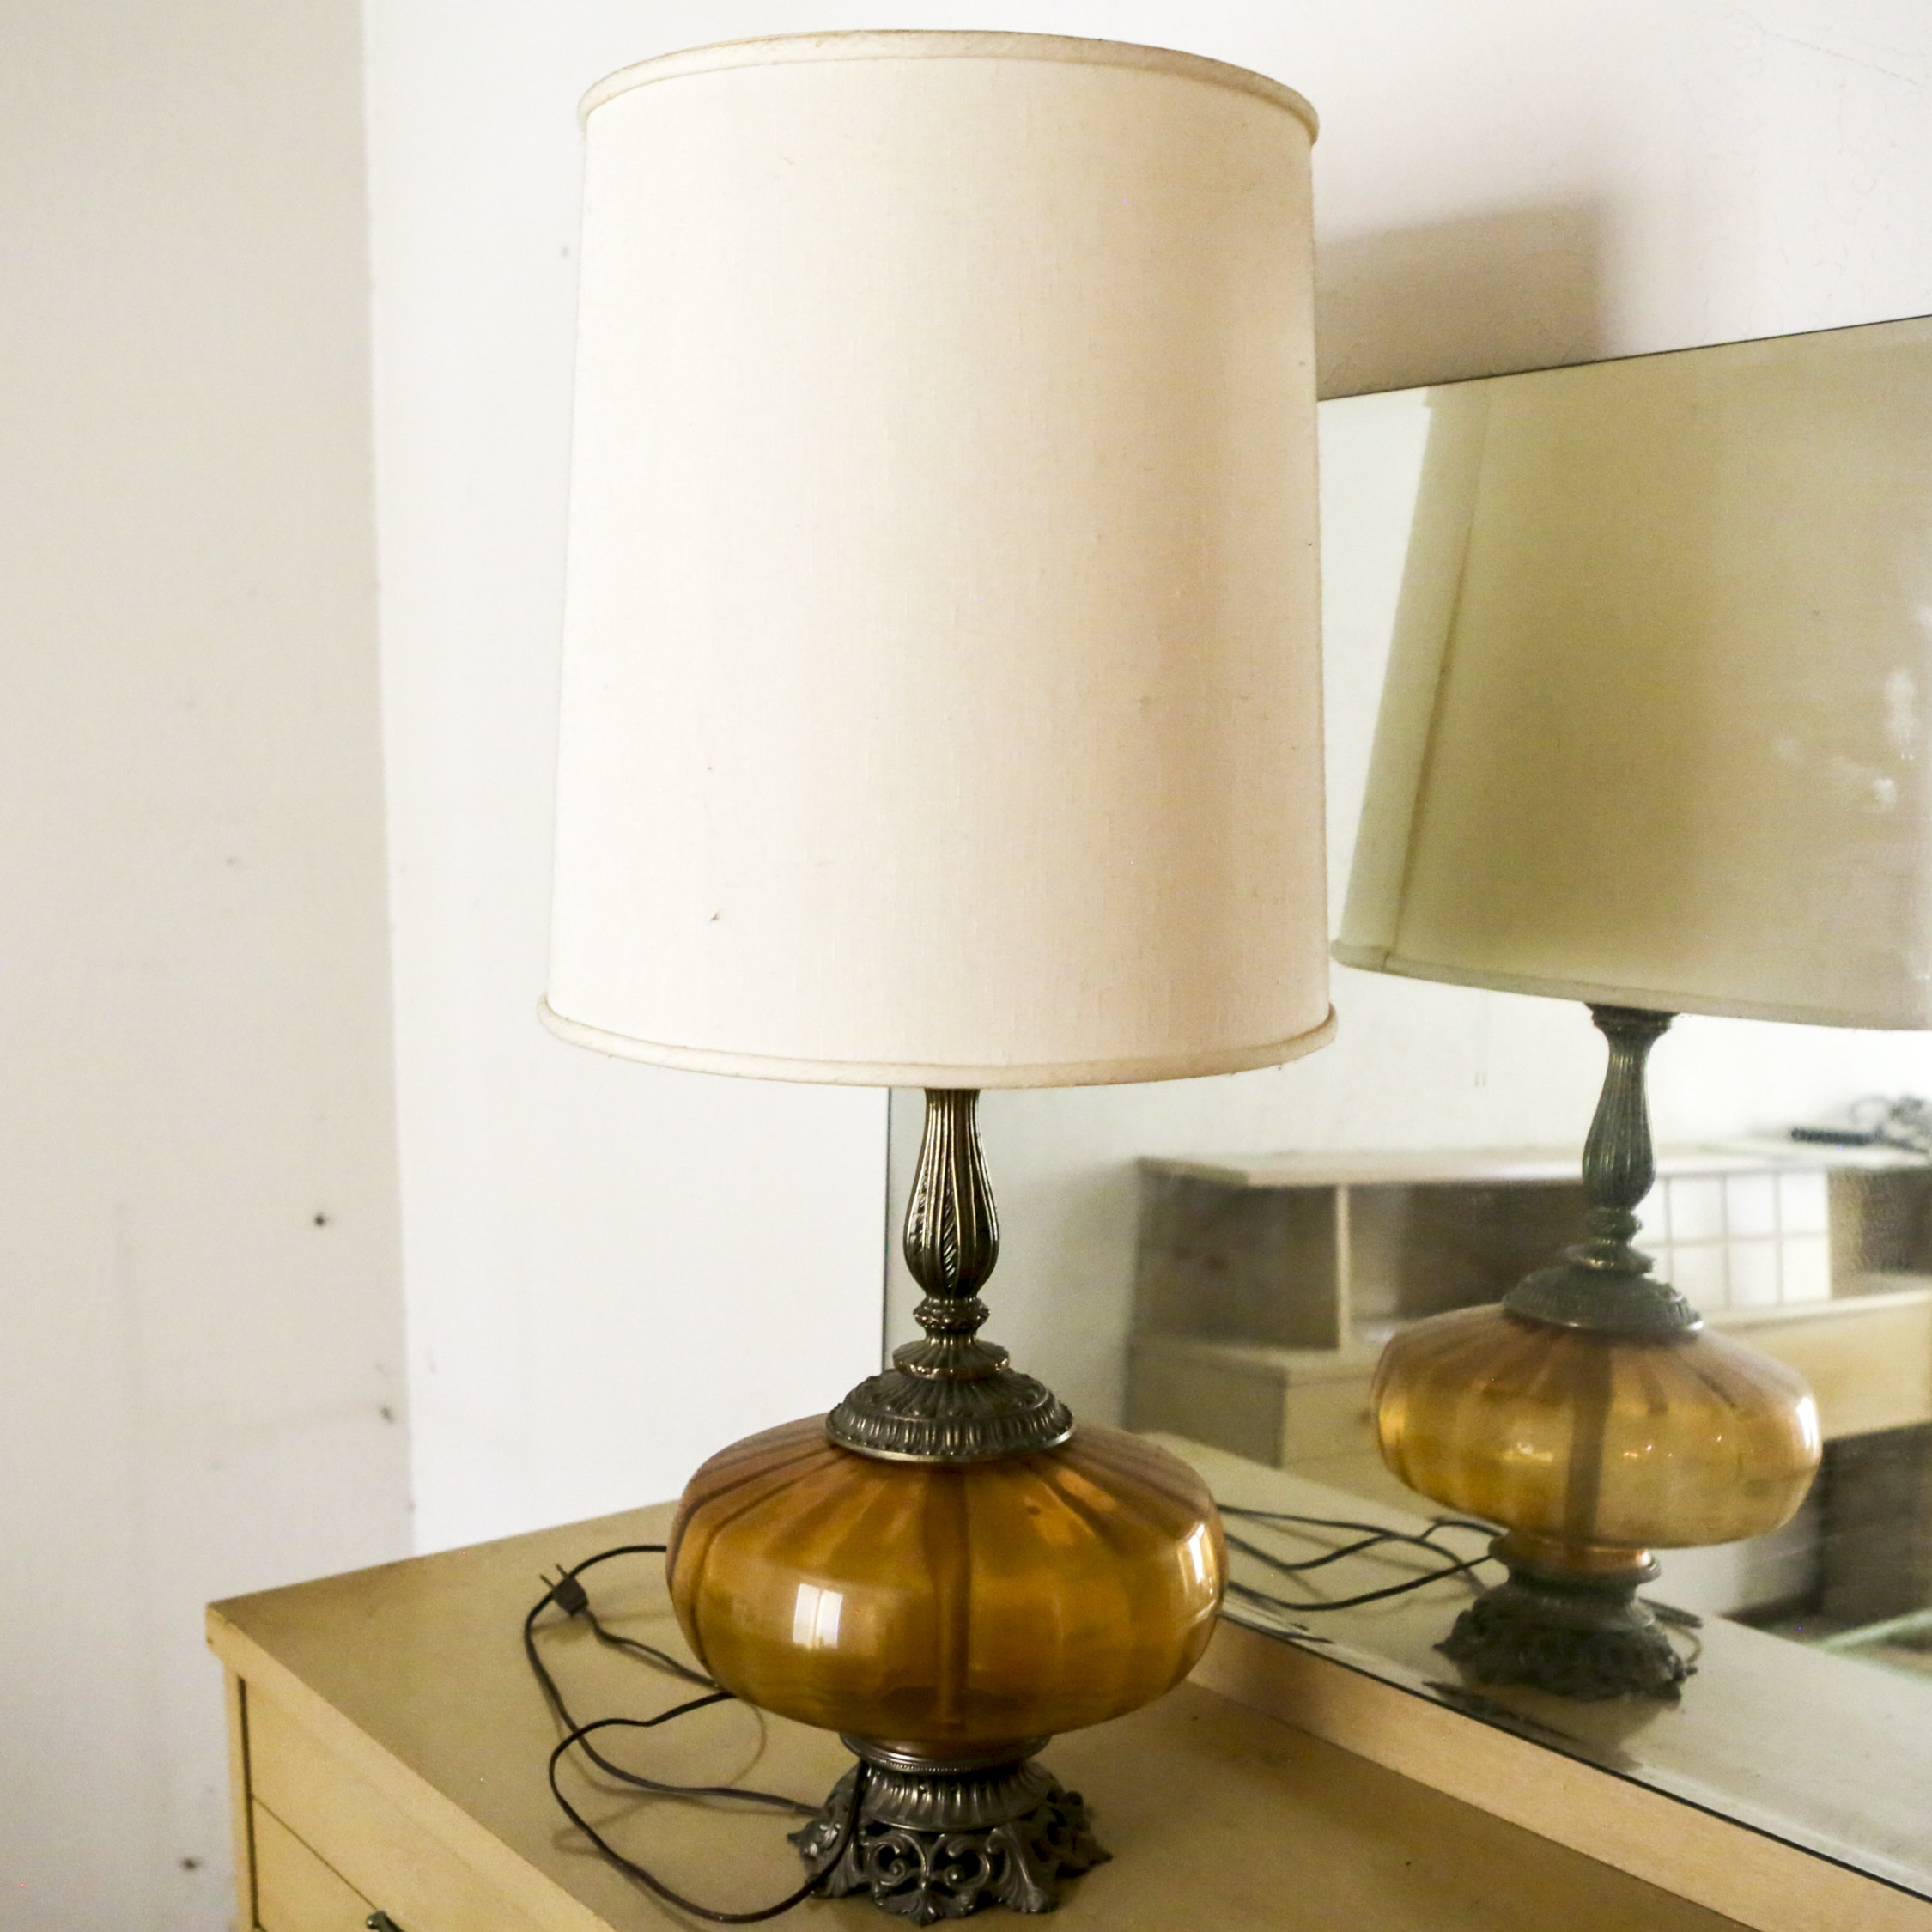 Vintage Glass and Metal Table Lamp